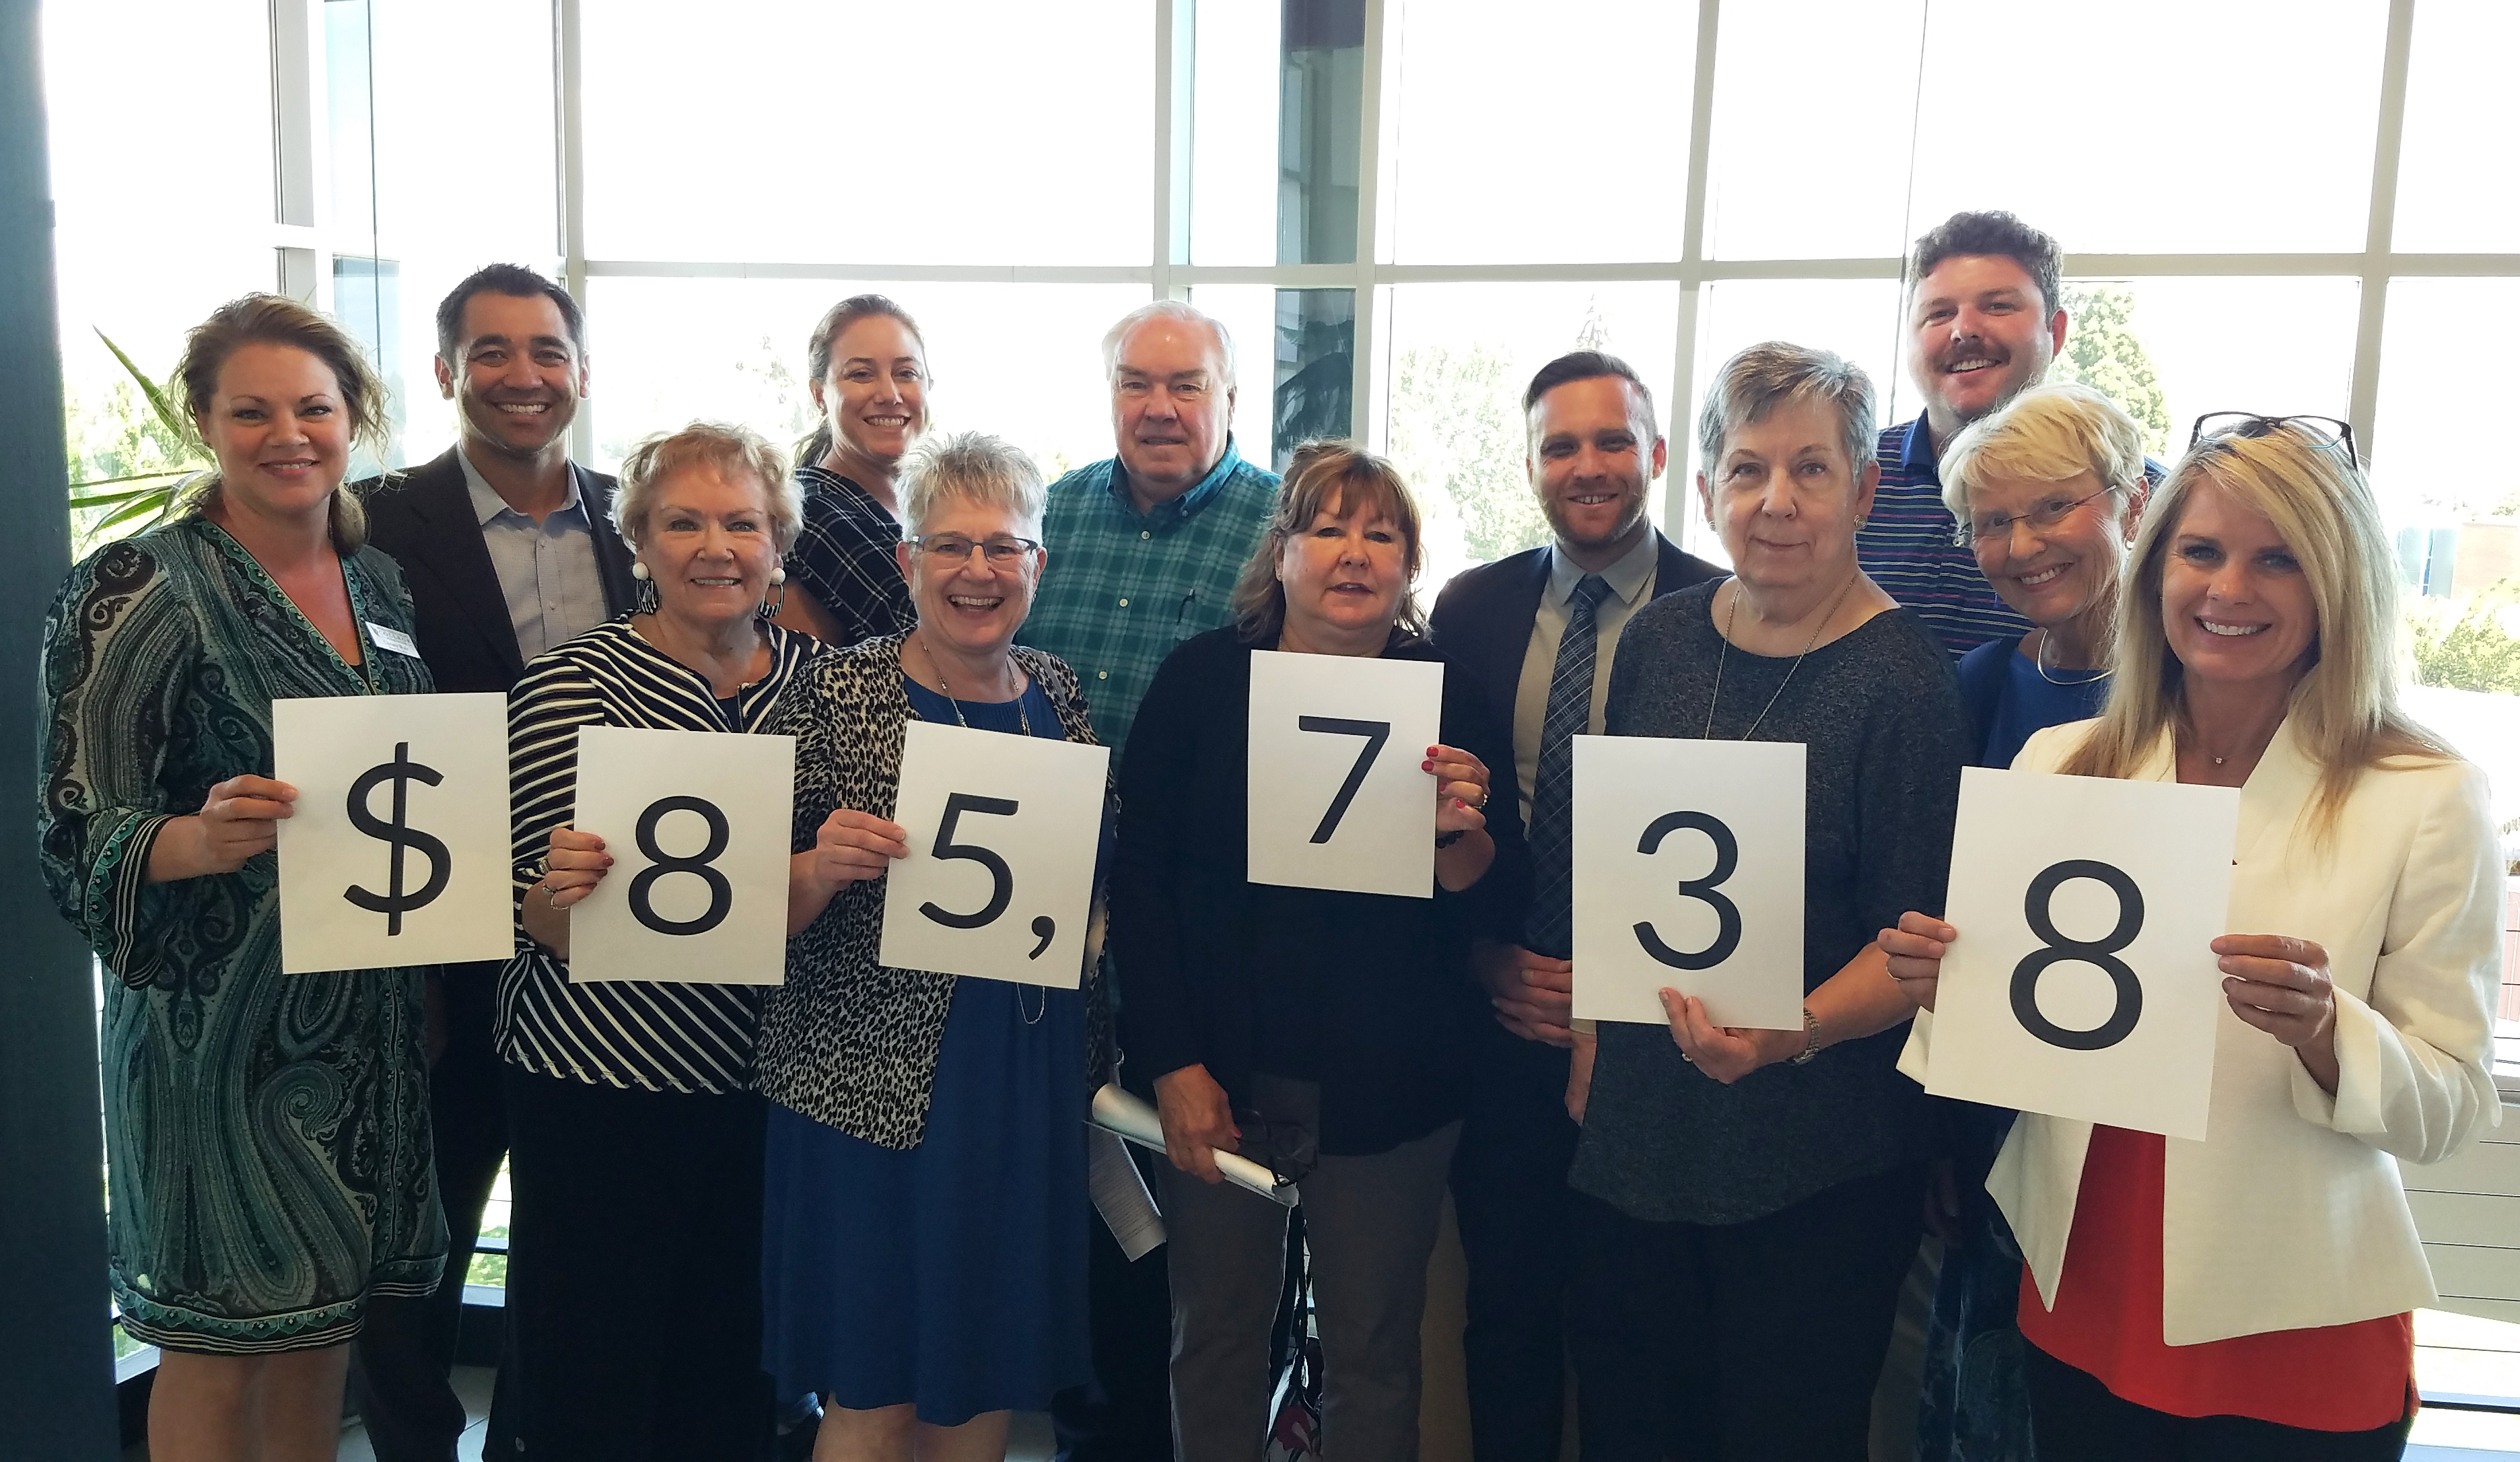 The Wenatchee Valley College Foundation Board holds up papers with the total amount raised written on them